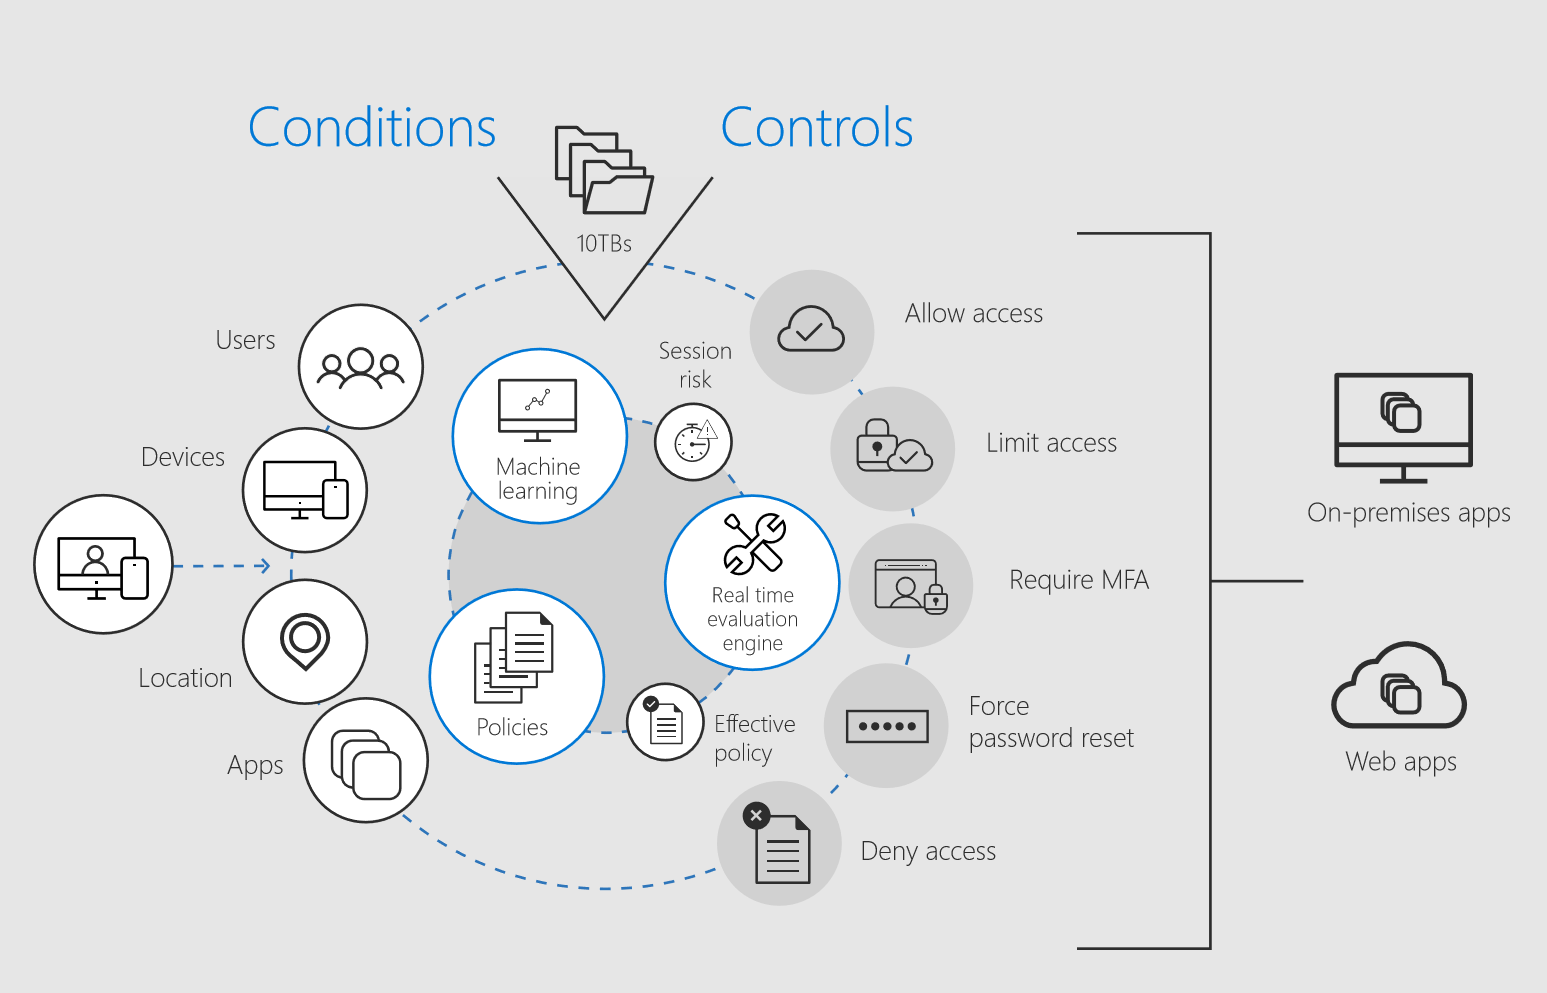 Azure AD Conditional Access evaluates a set of configurable conditions, including user, device, application, and risk.